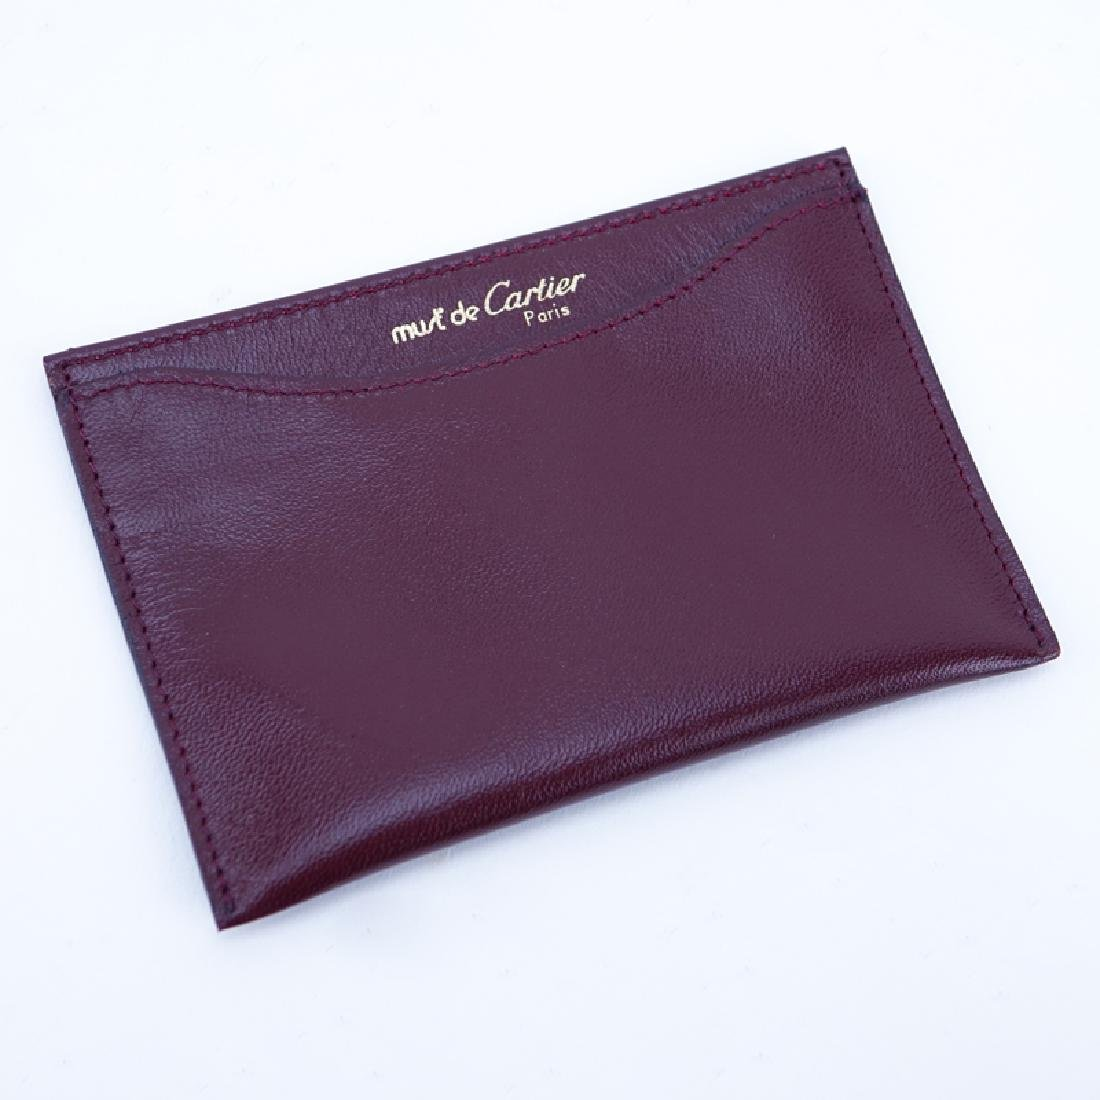 Cartier Brown Leather Card Holder. In original box.